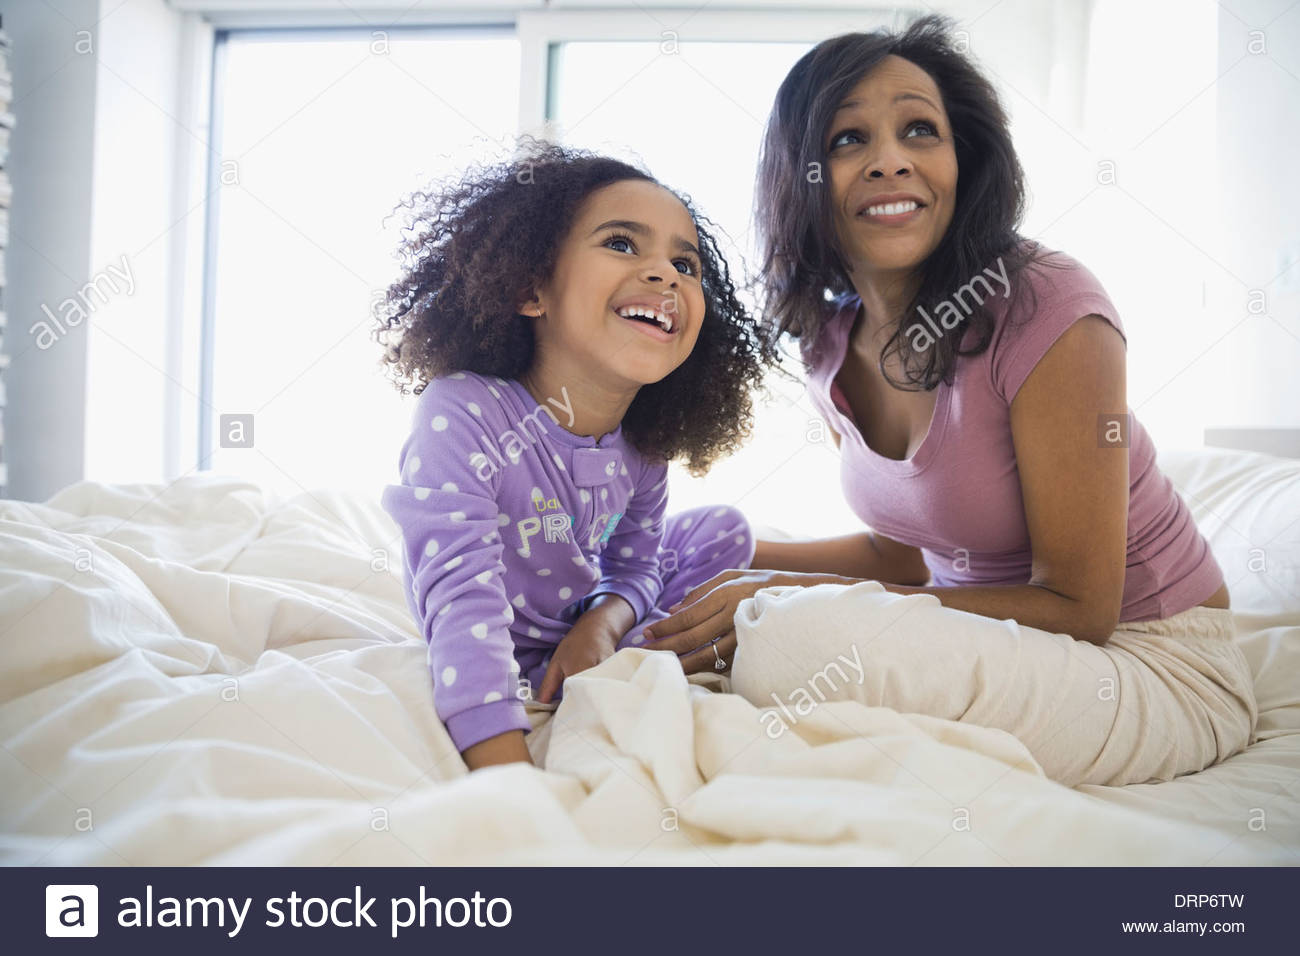 Smiling mother and daughter sitting on bed Photo Stock